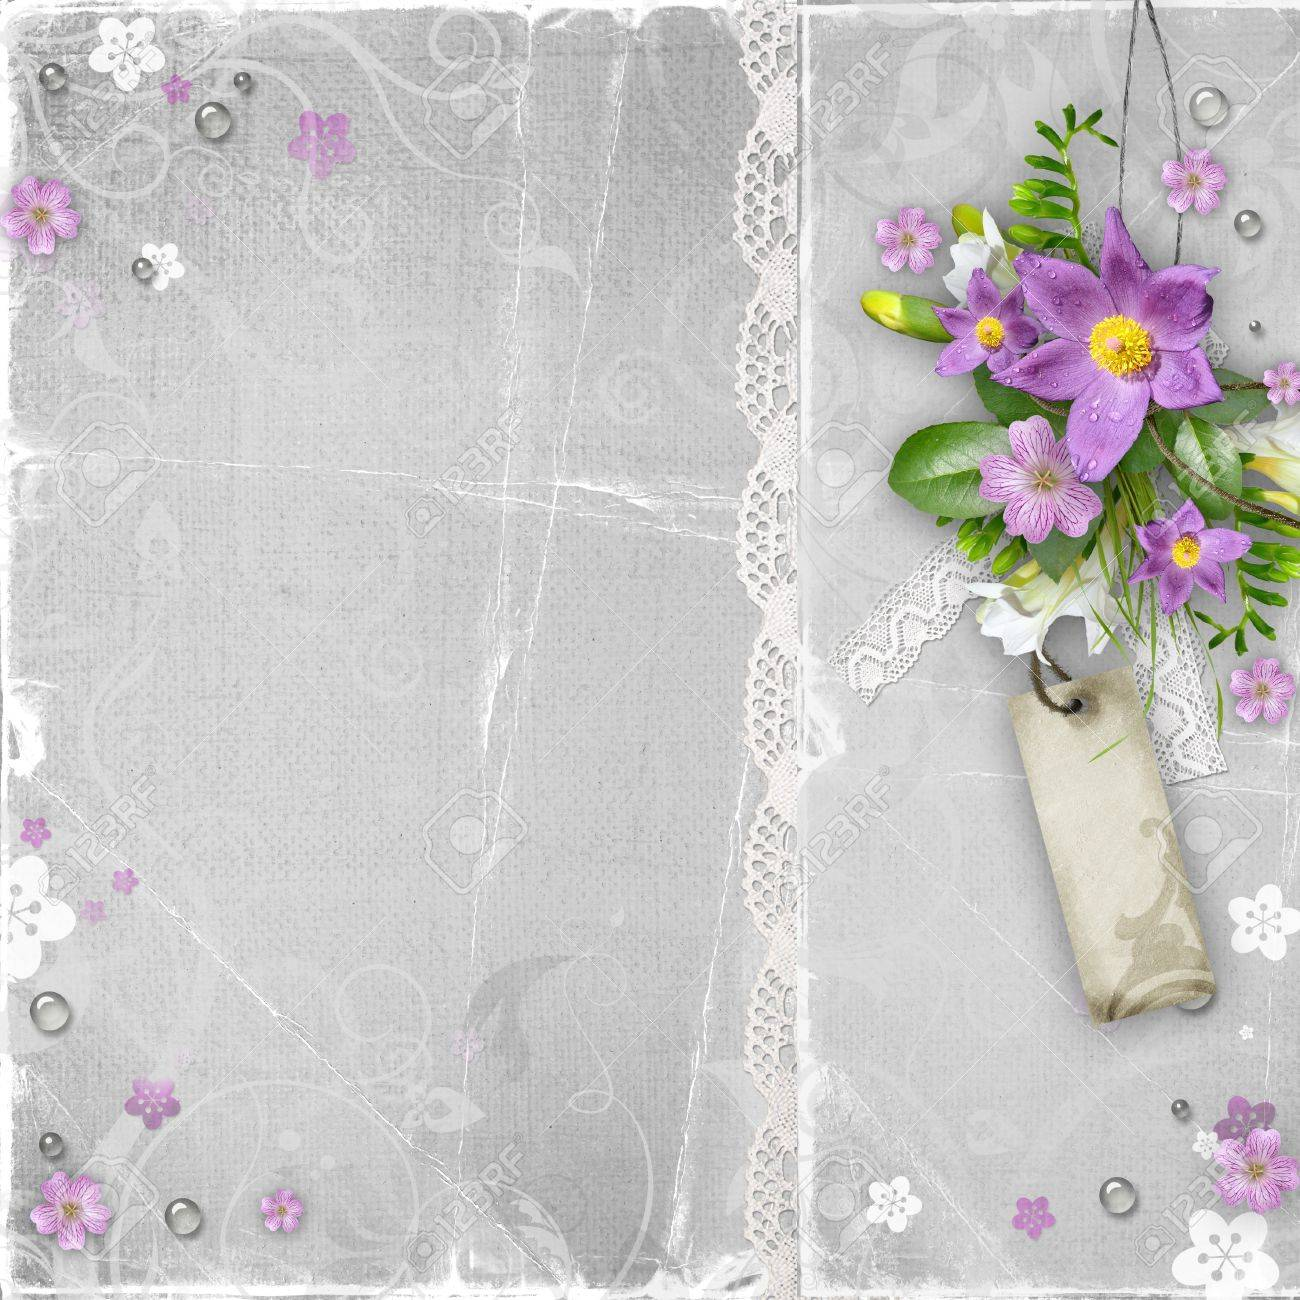 vintage paper textured background with flowers Stock Photo - 13185422